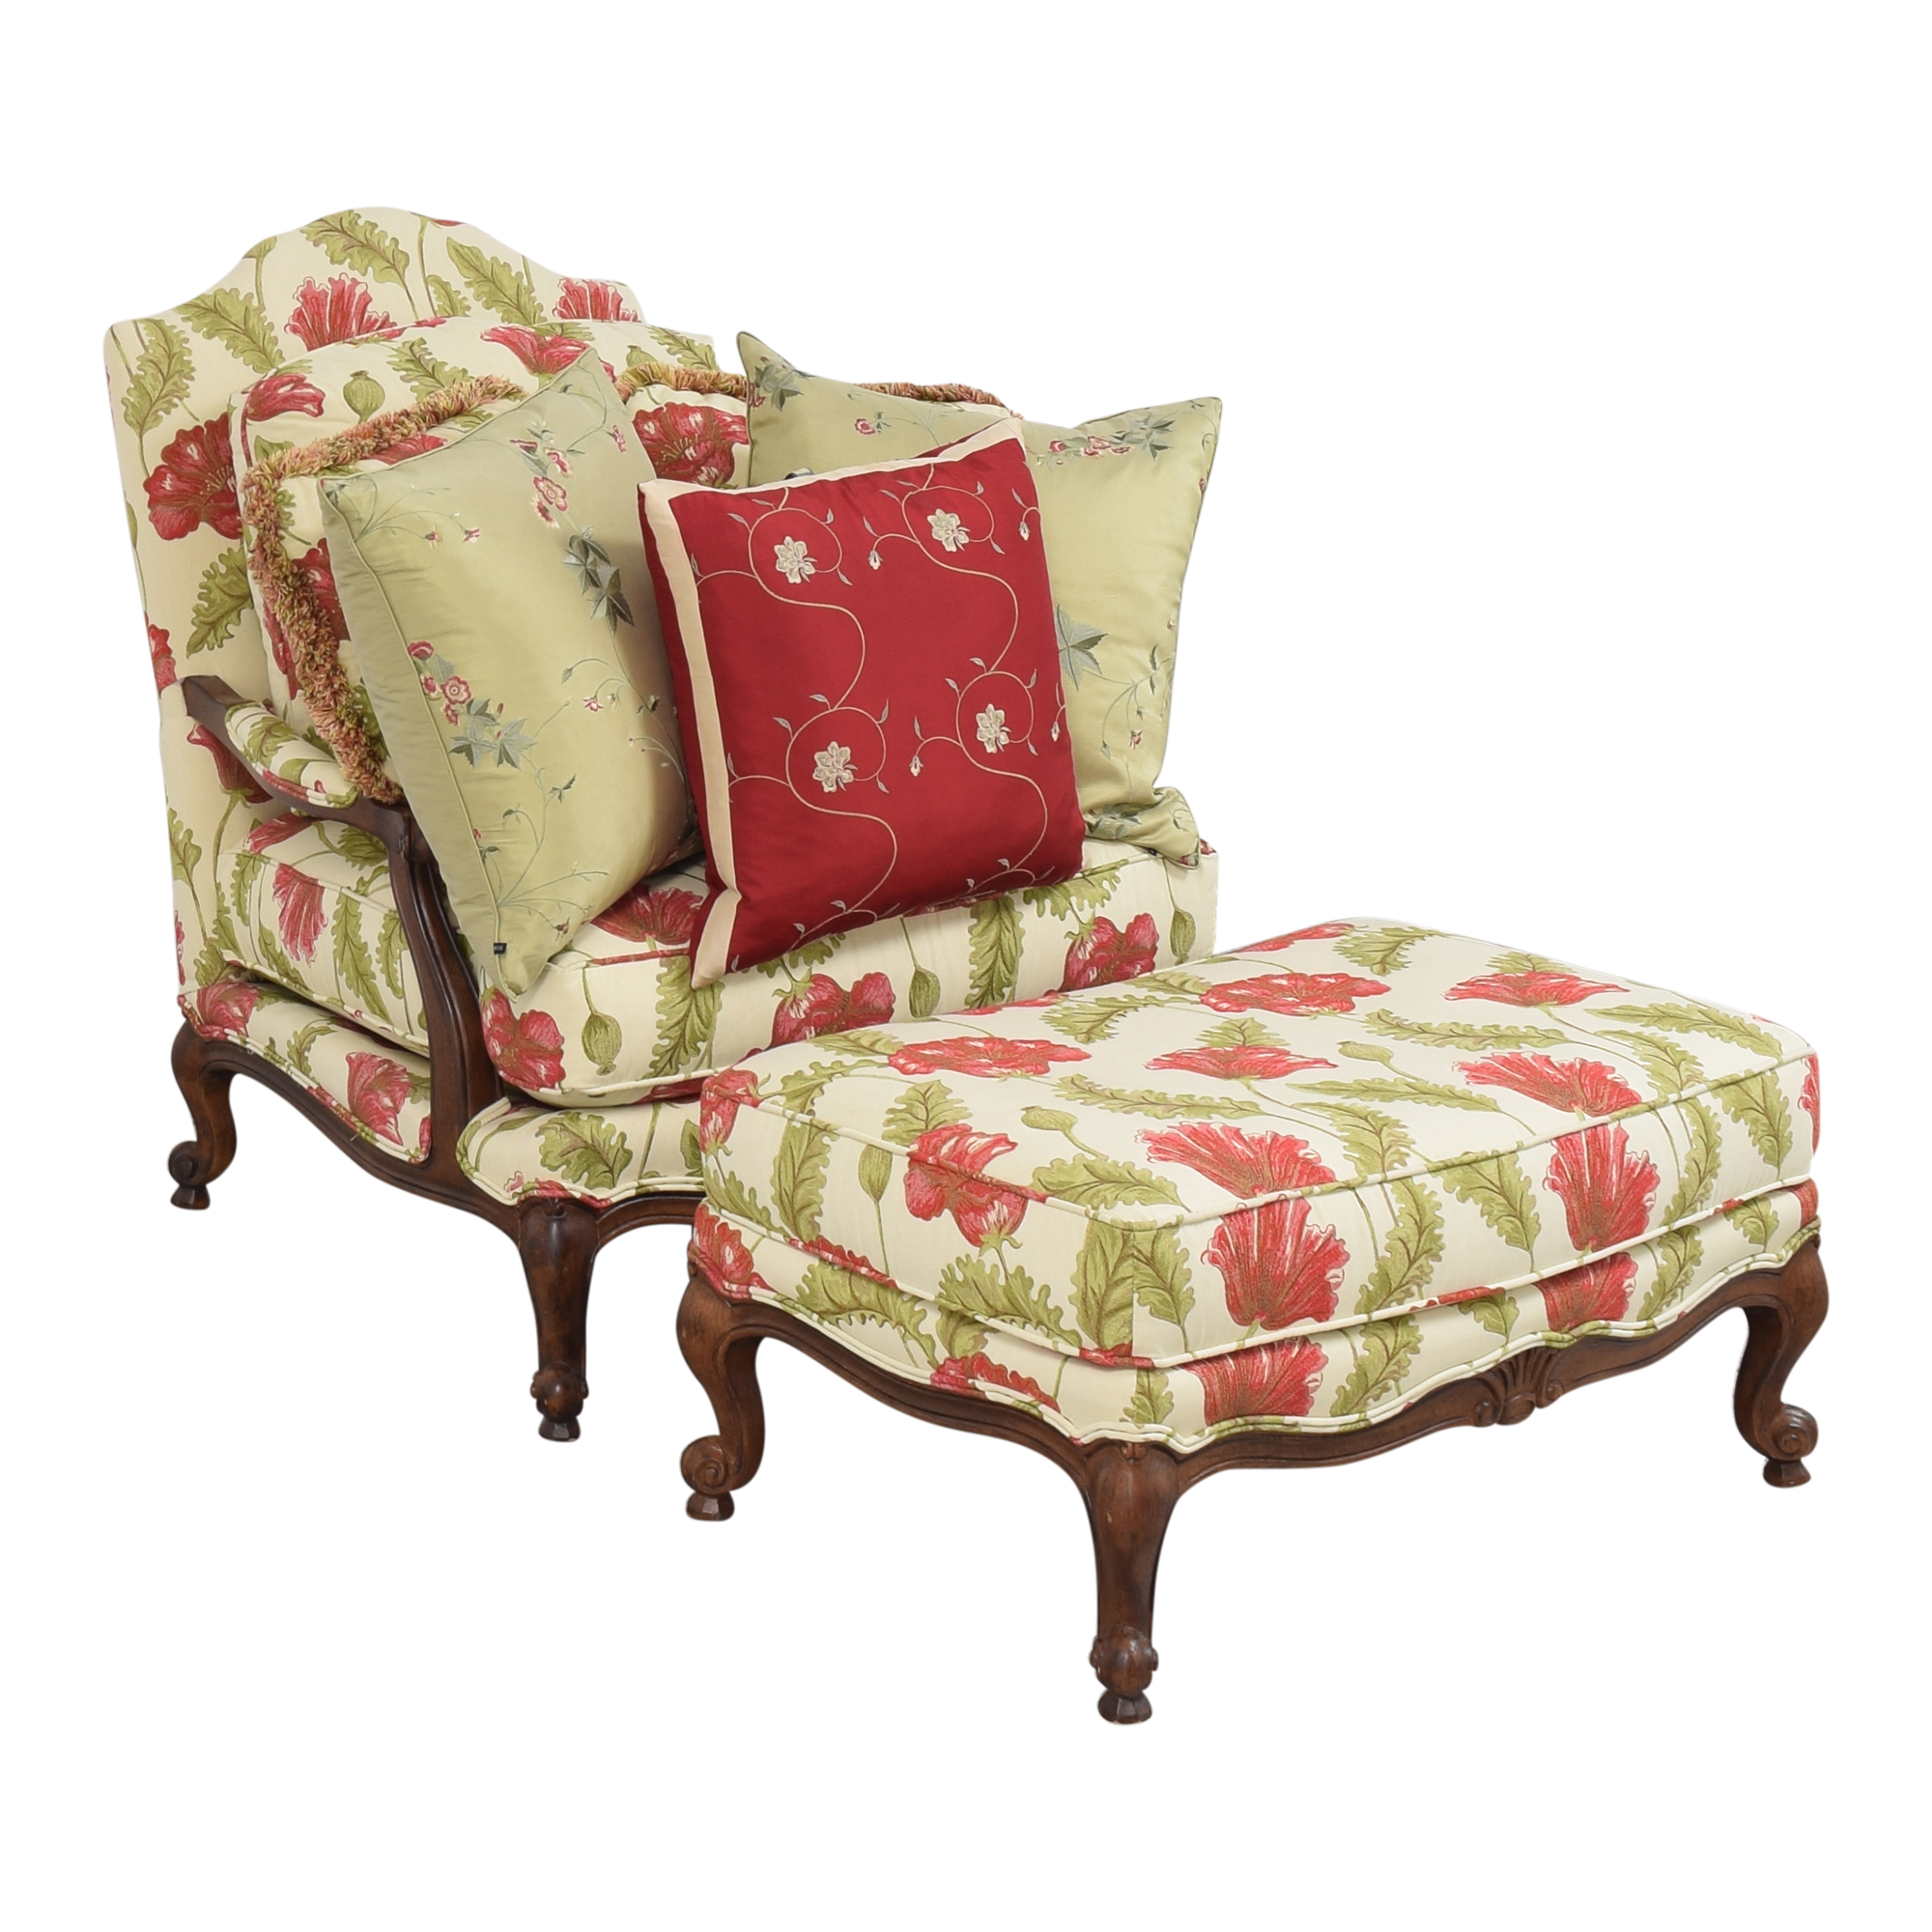 Clayton Marcus Floral Chair with Ottoman / Accent Chairs